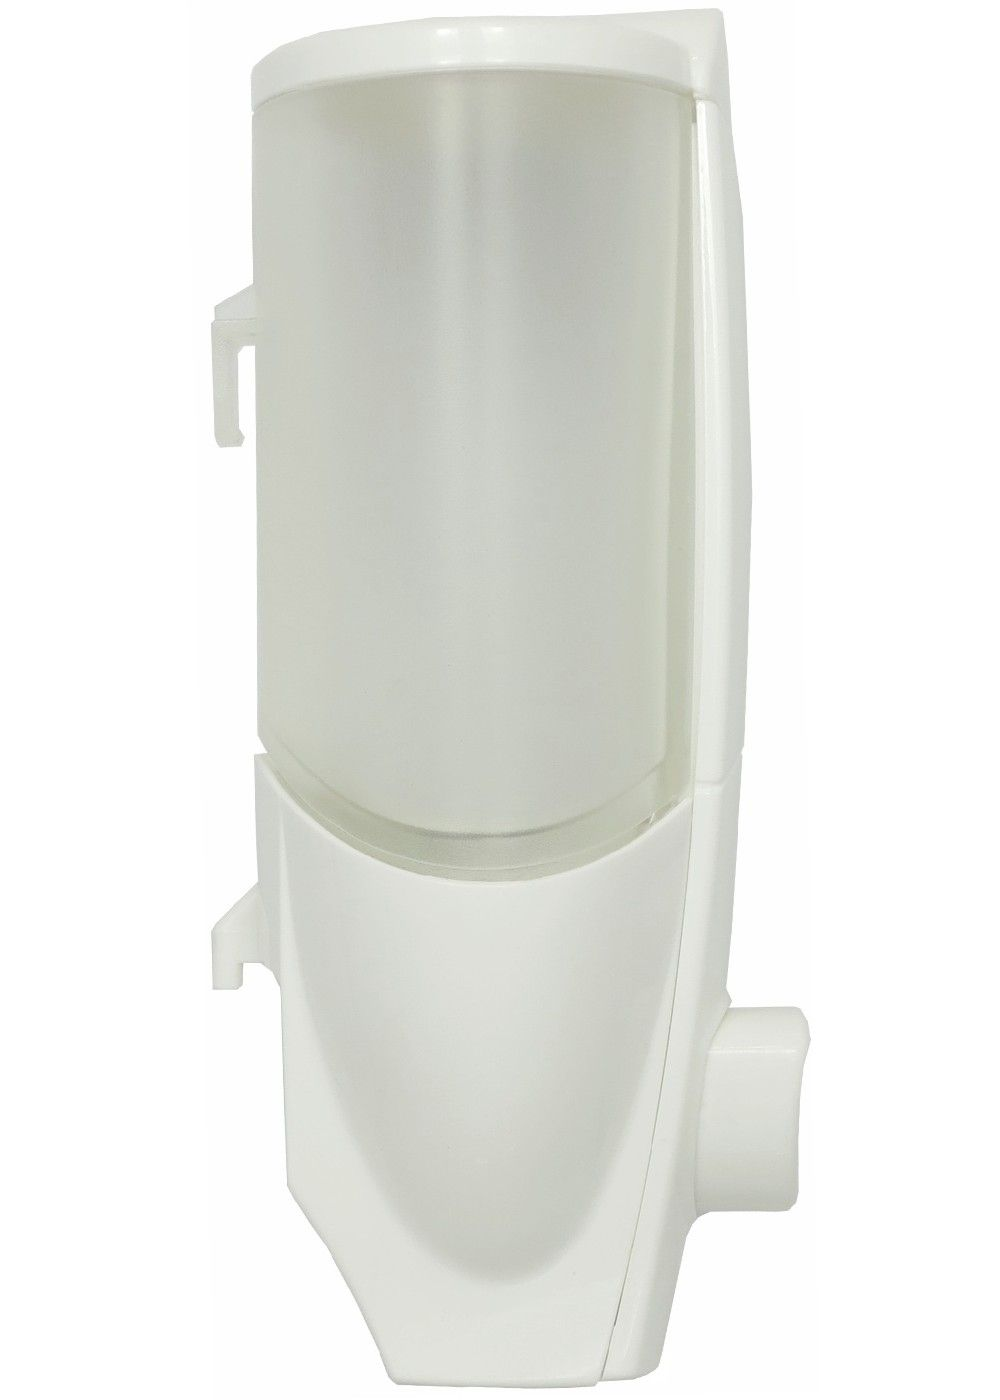 Dispensador de jab n champ dosificador fijaci n en pared for Dosificador jabon ducha